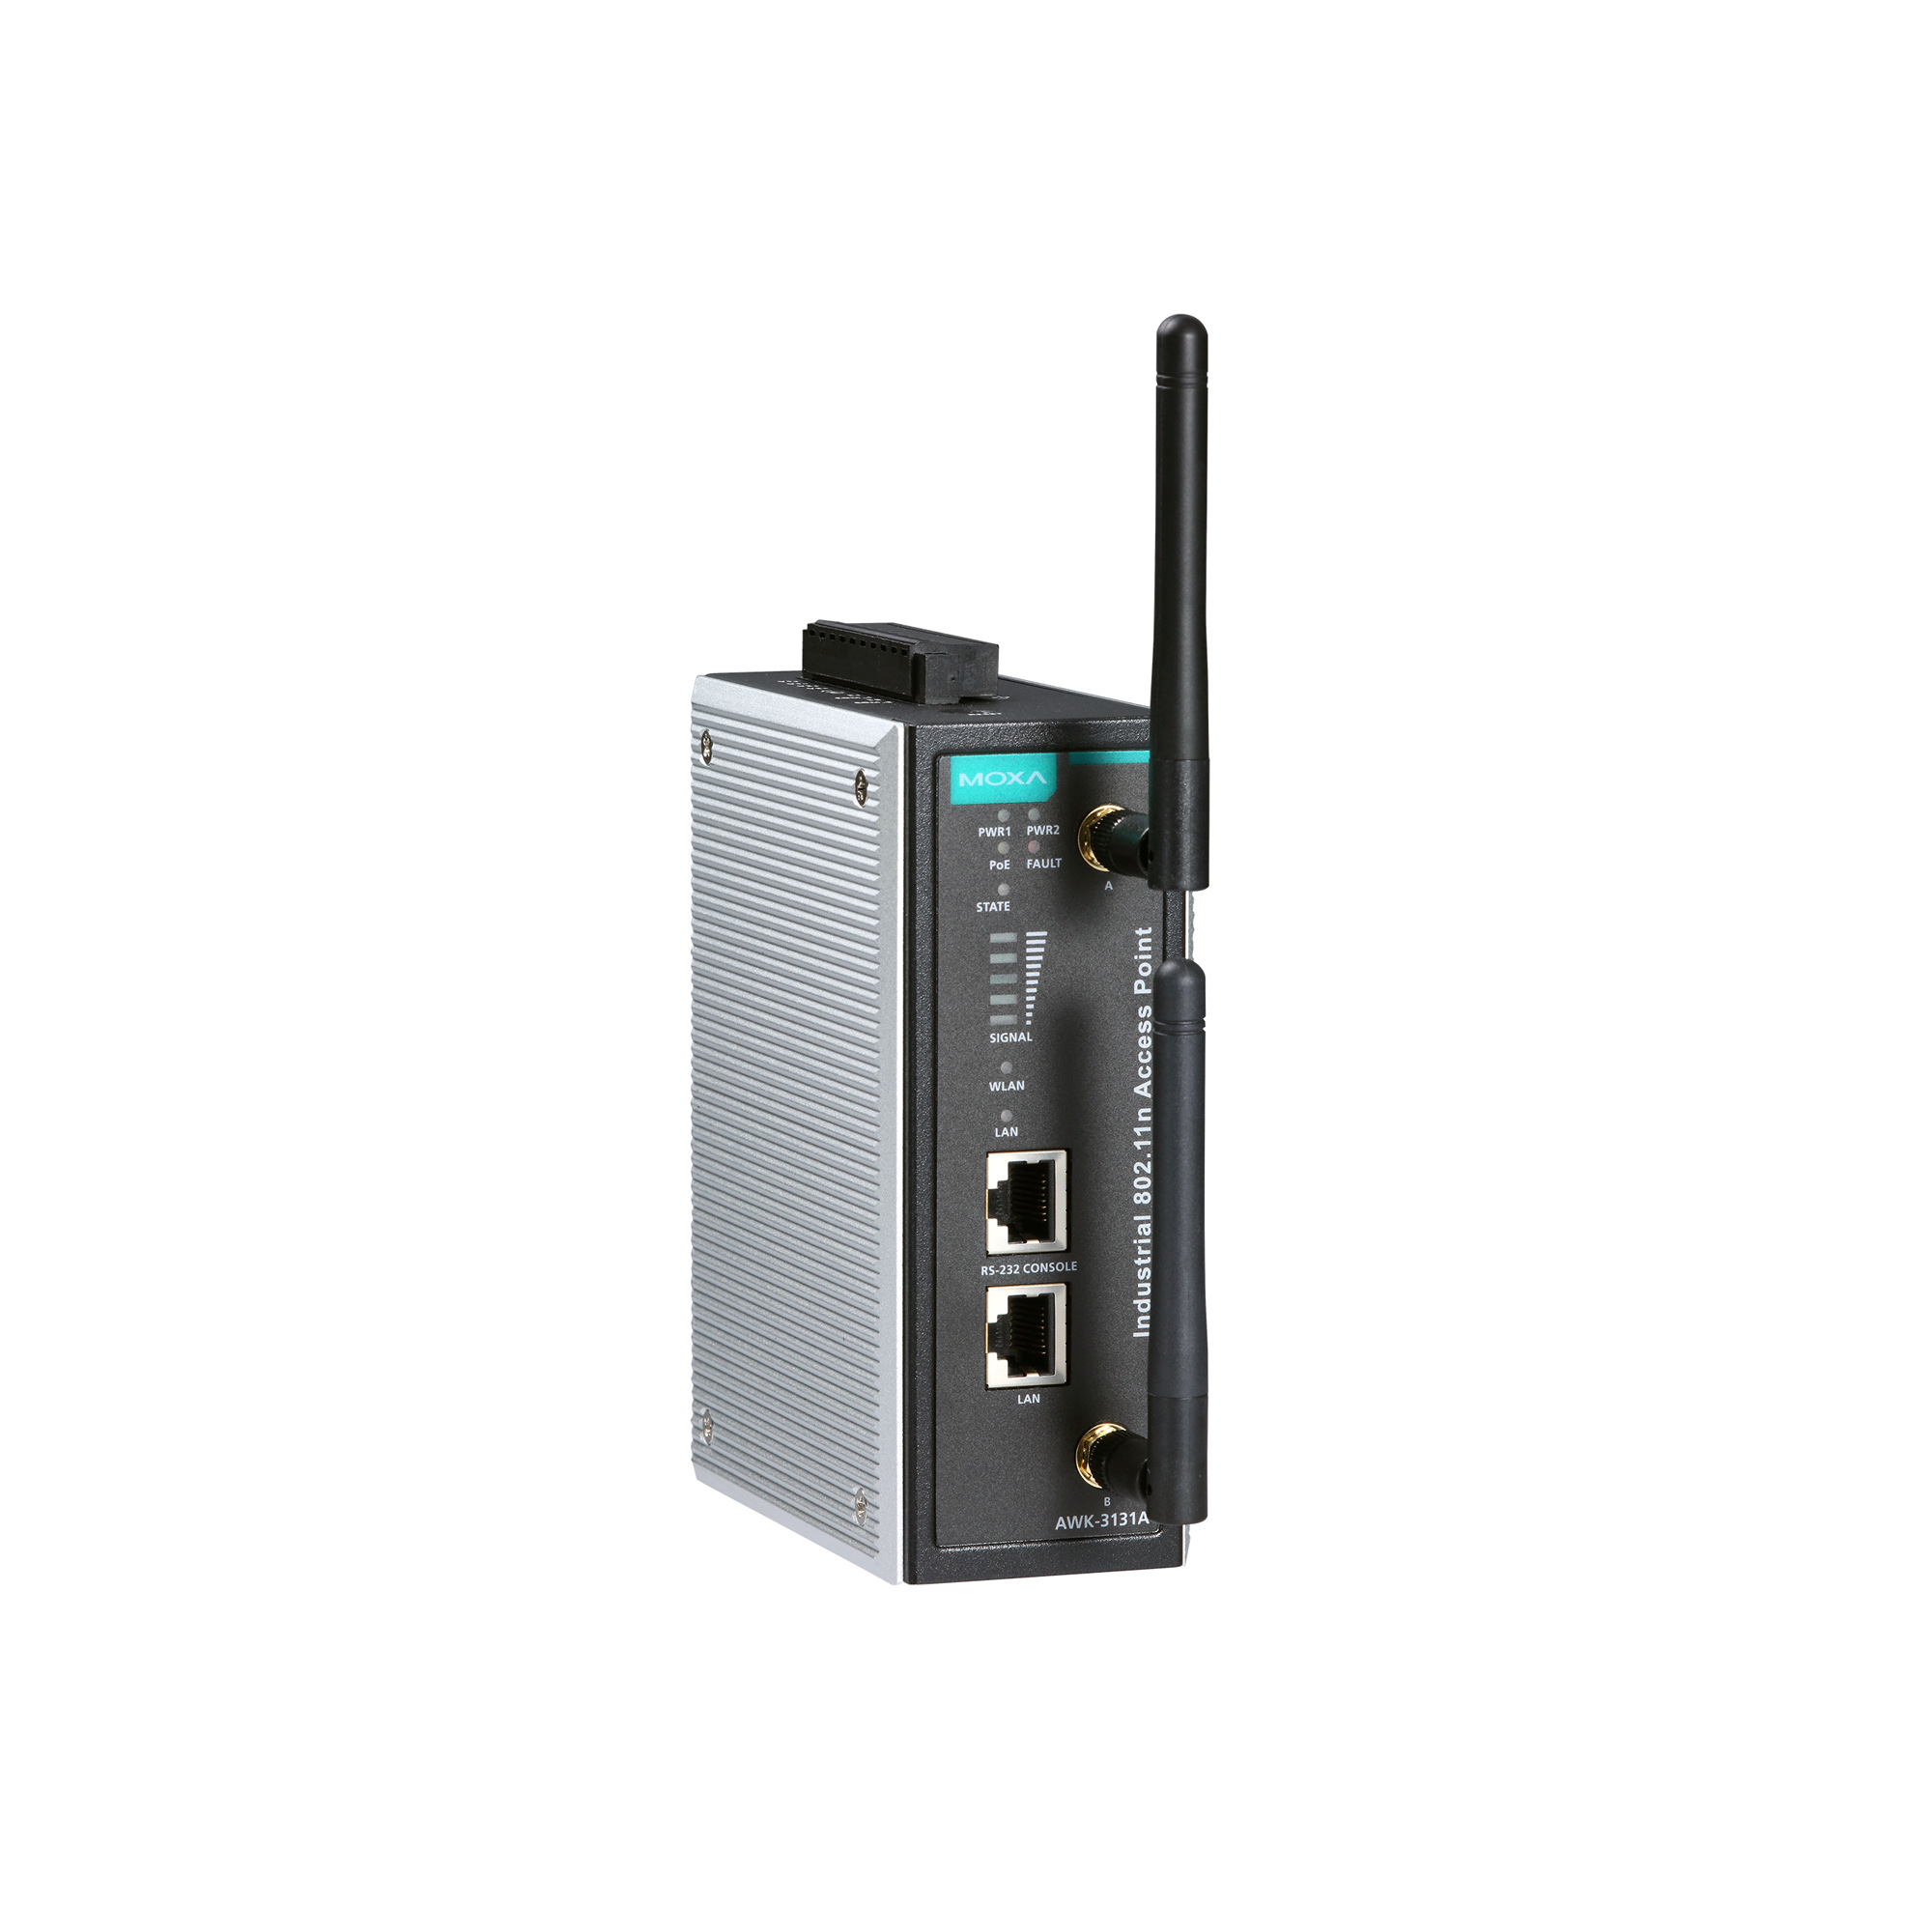 AWK-3131A Series - WLAN AP/Bridge/Client | MOXA